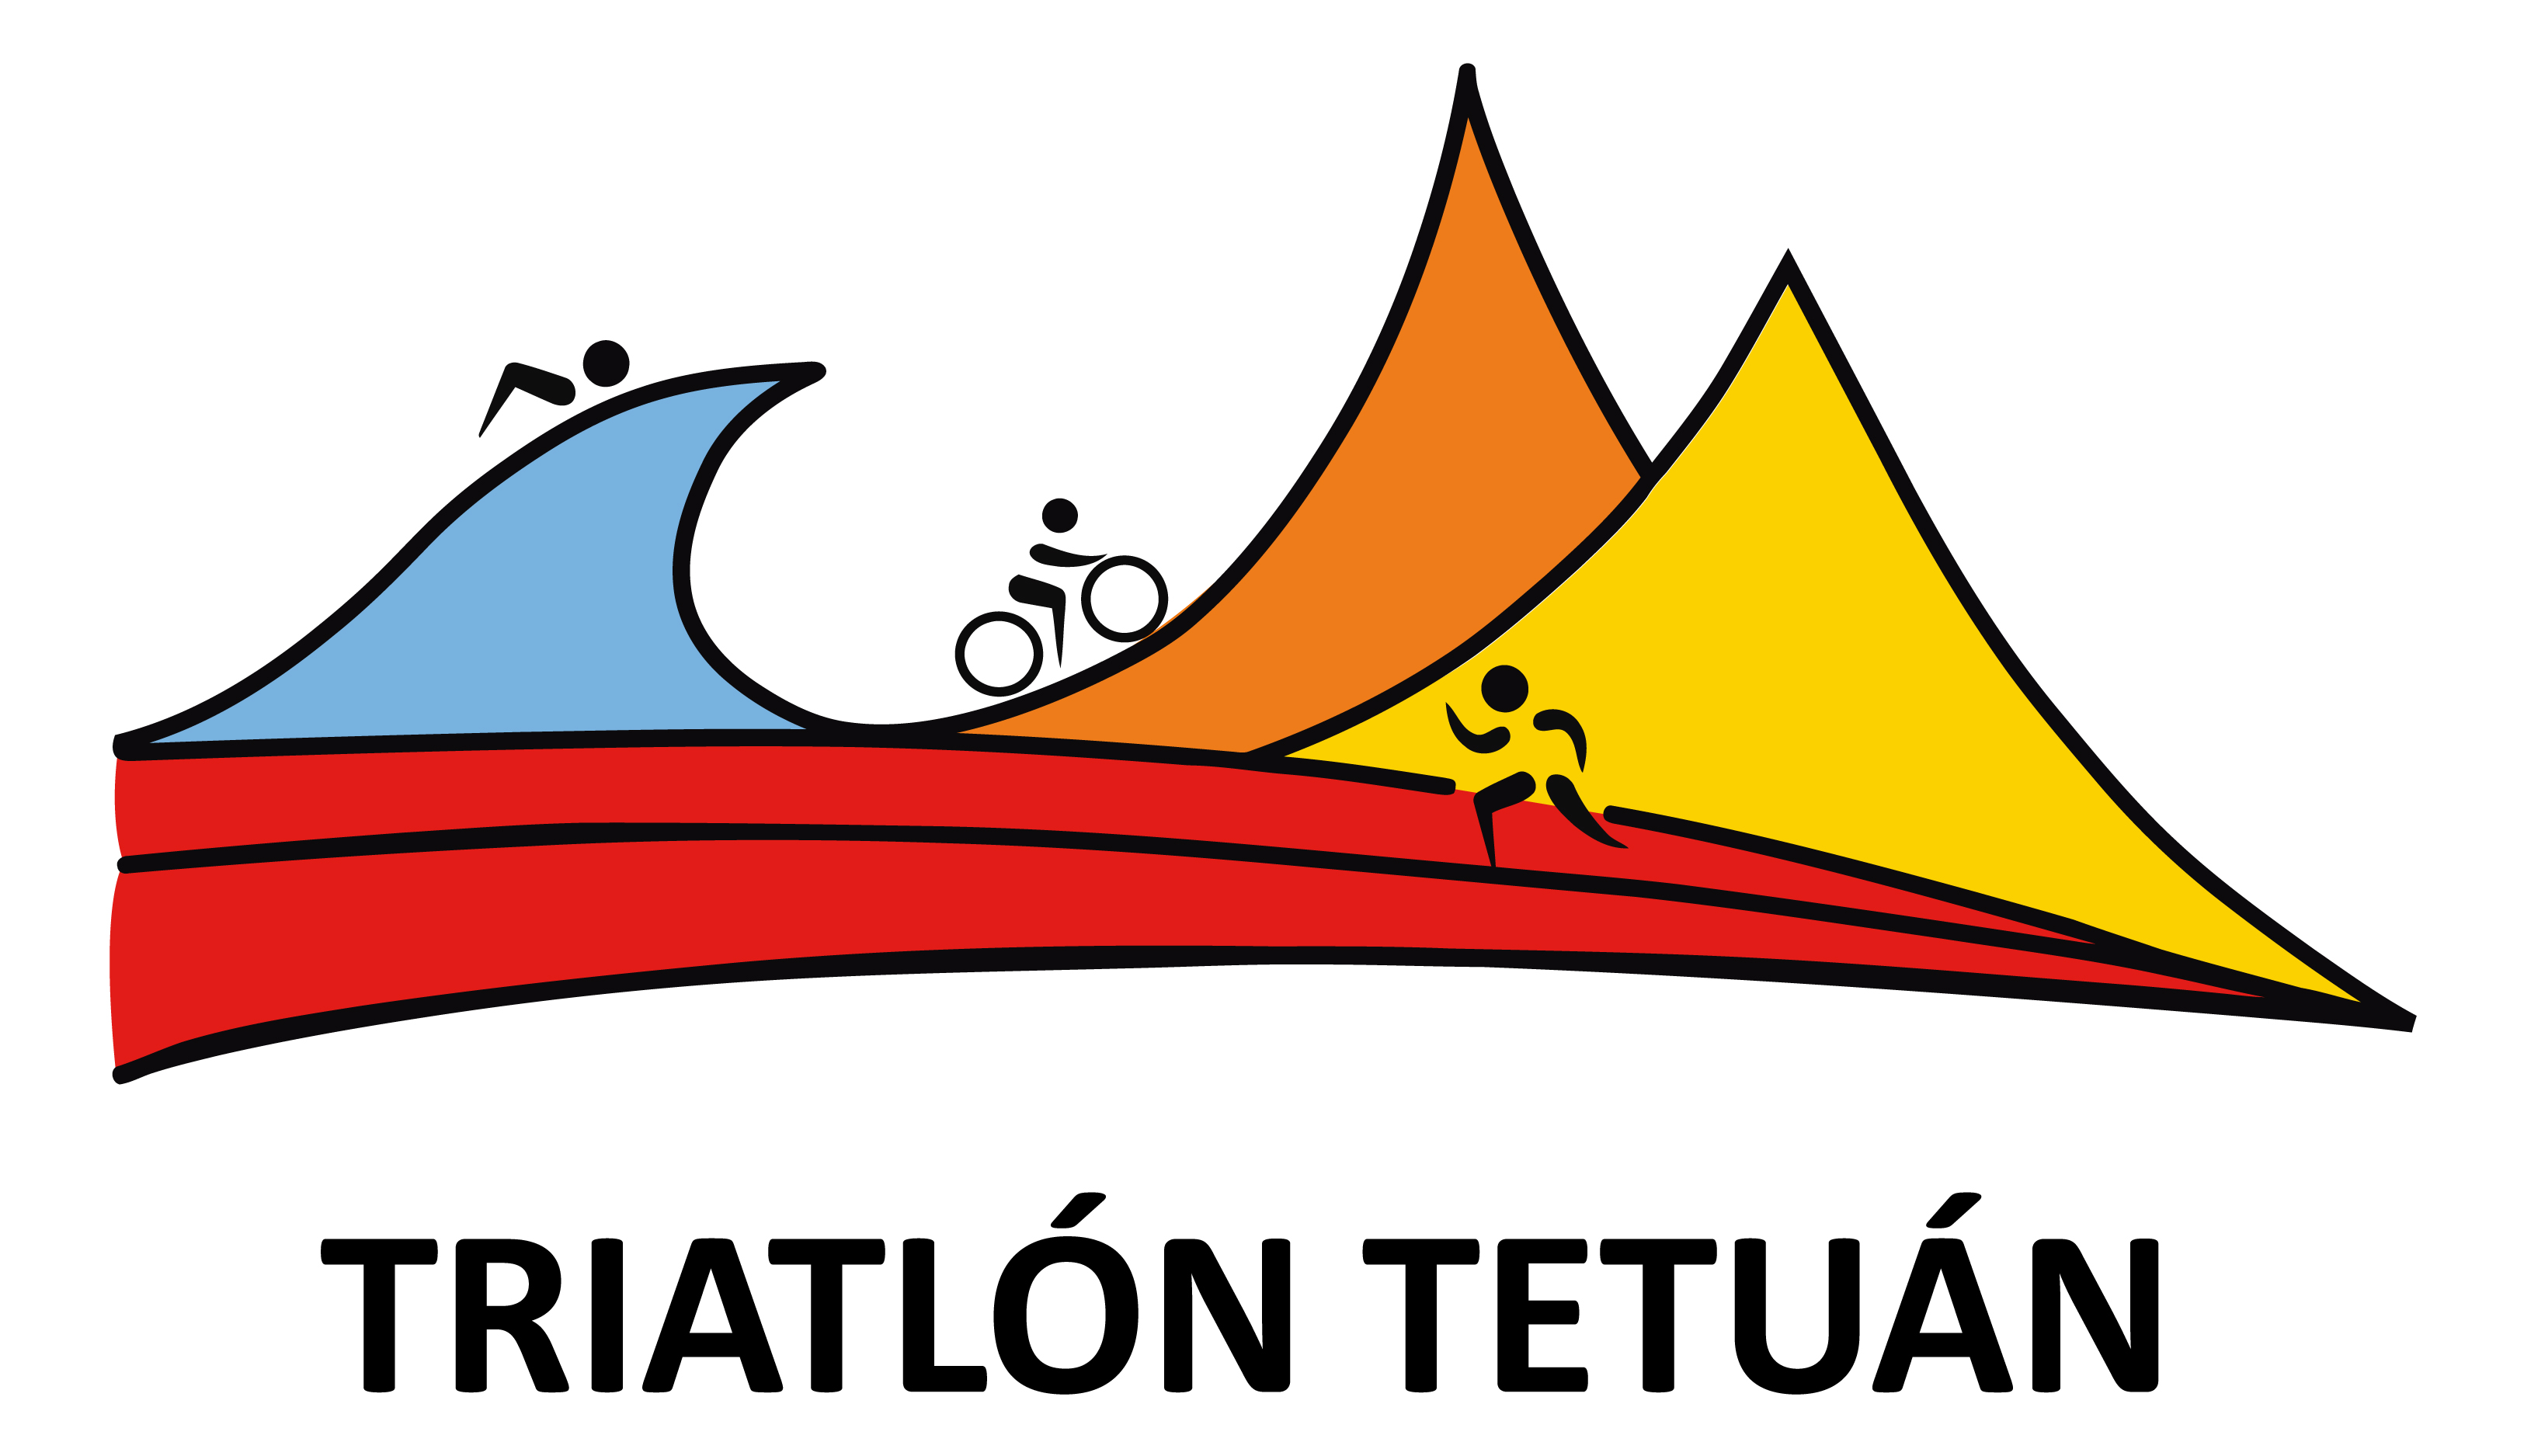 Club Triatlon Tetuan